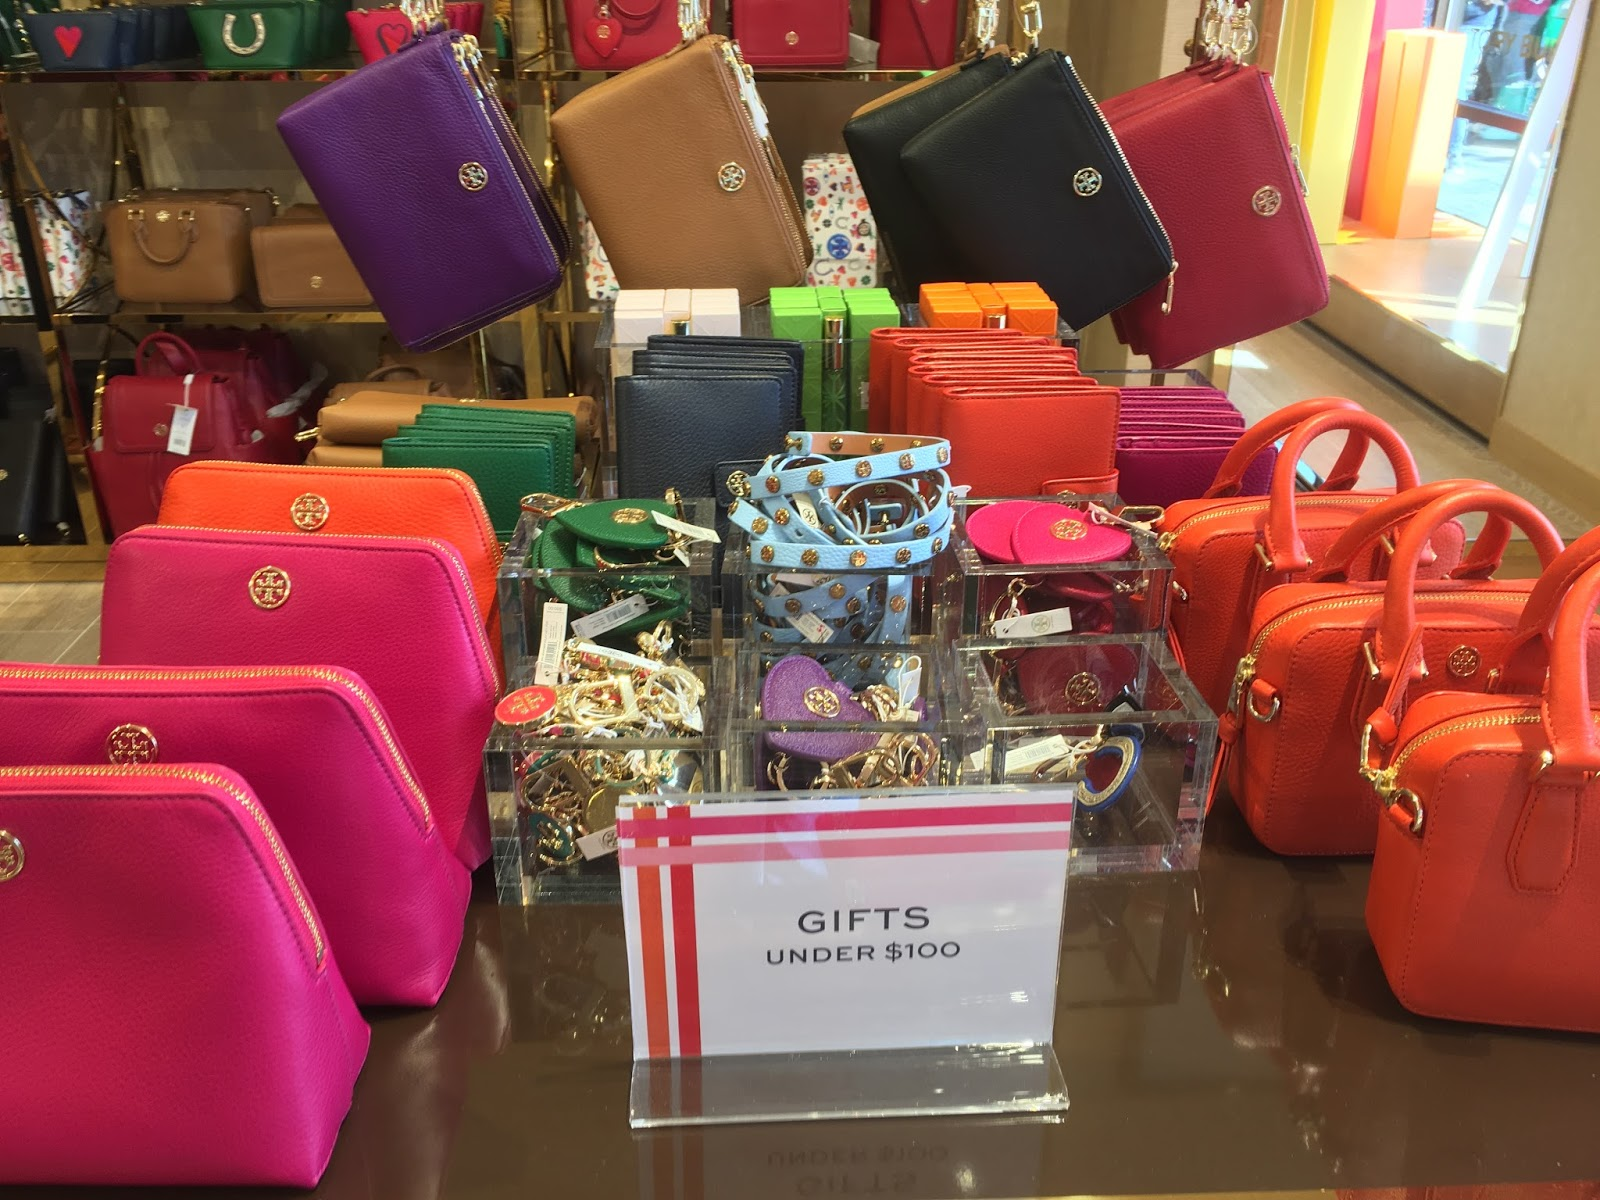 Tory Burch Outlet Clarksburg Premium Bag Purses Grand Opening Gifts Under 100